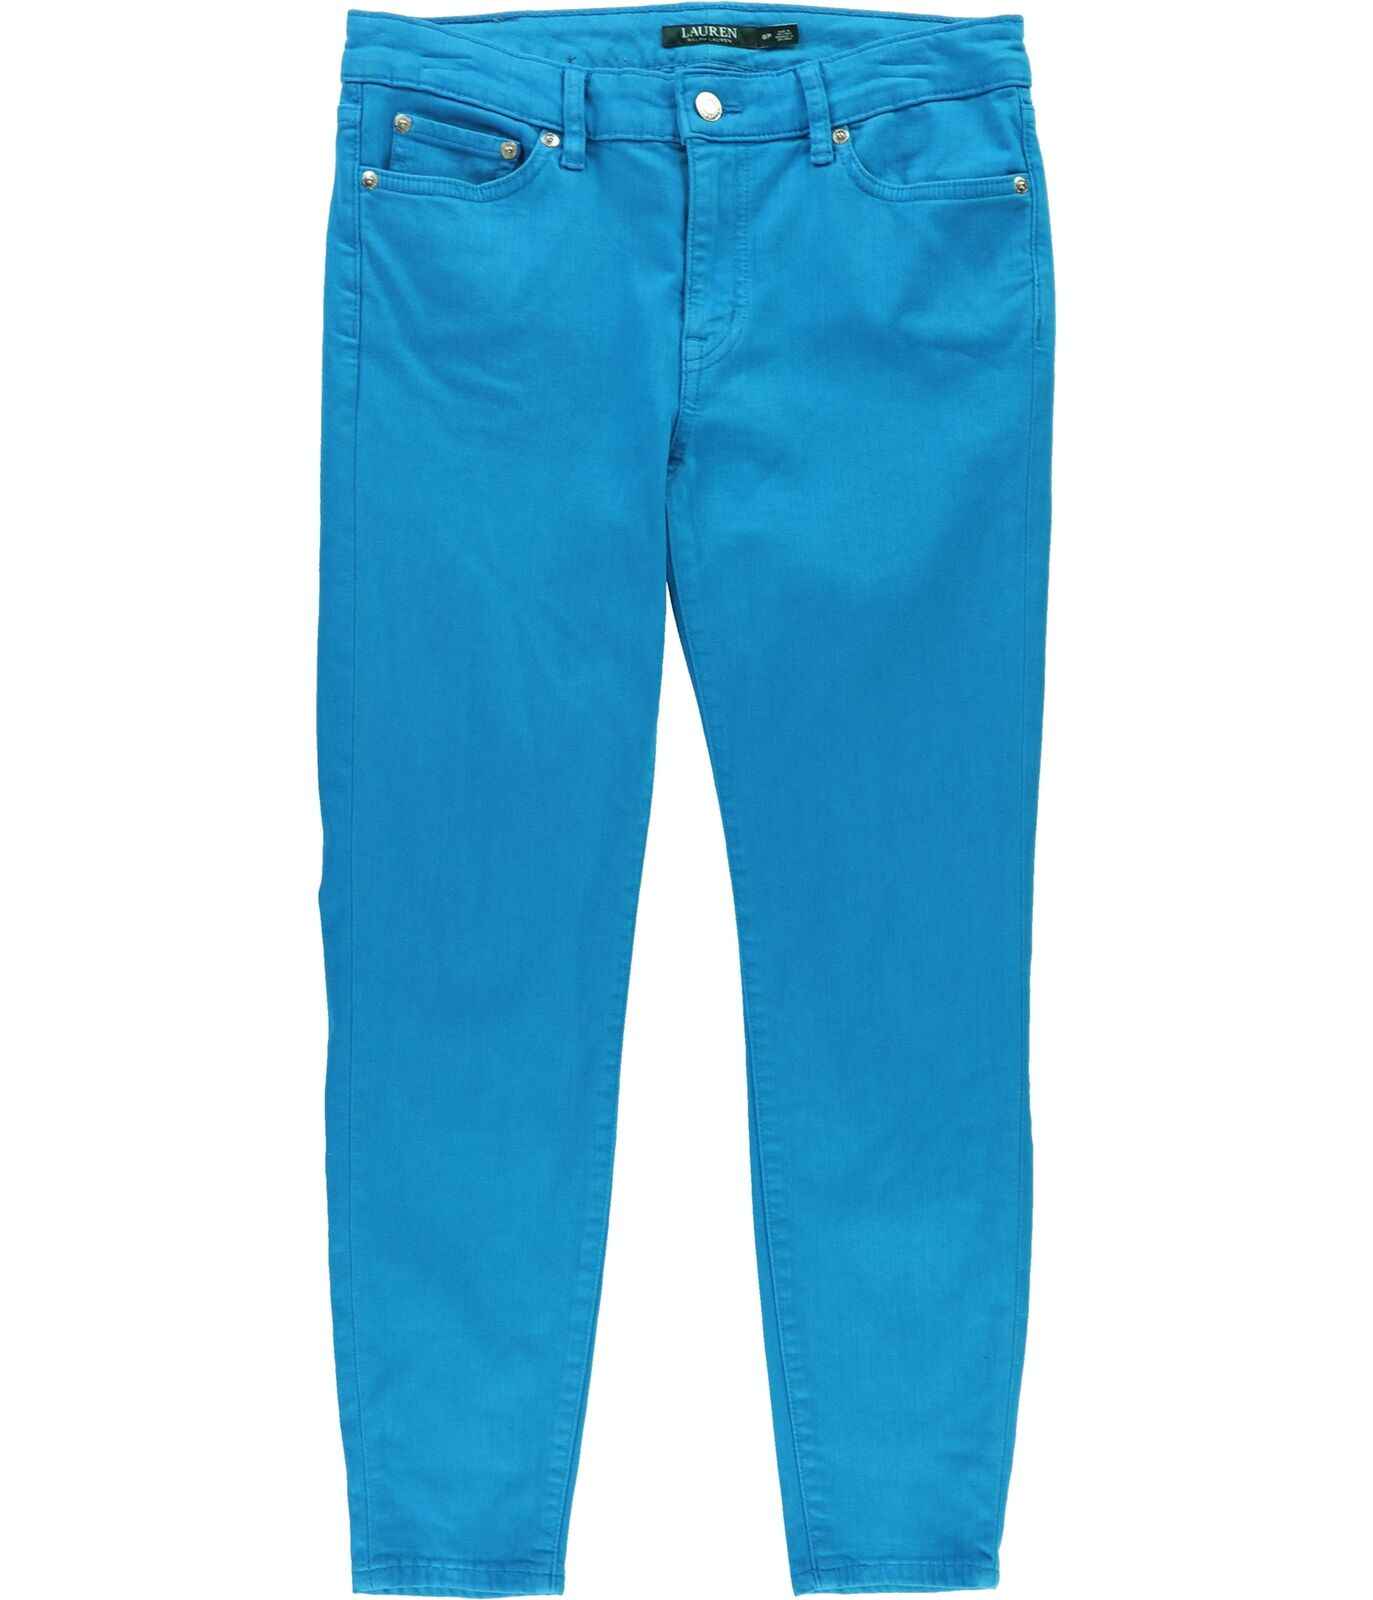 Ralph Lauren Womens Superstretch Skinny Fit Jeans bluee 8P 25 - Petite